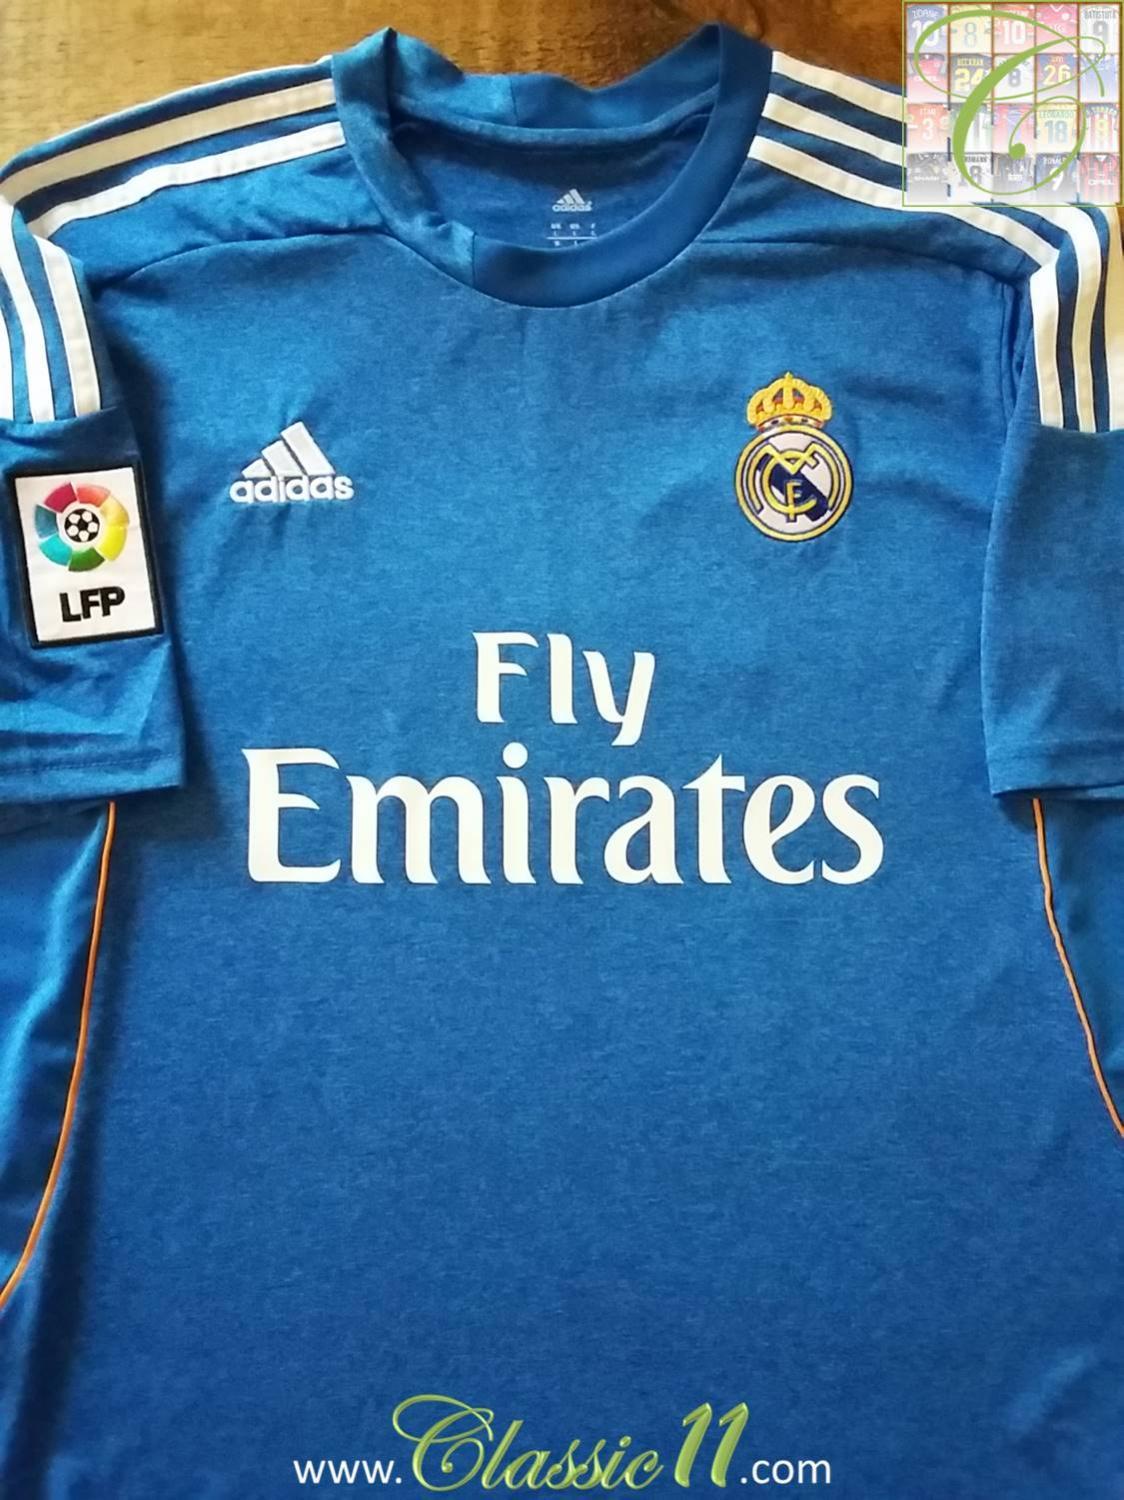 5ef6426eff7 Real Madrid Away maglia di calcio 2013 - 2014. Sponsored by Emirates